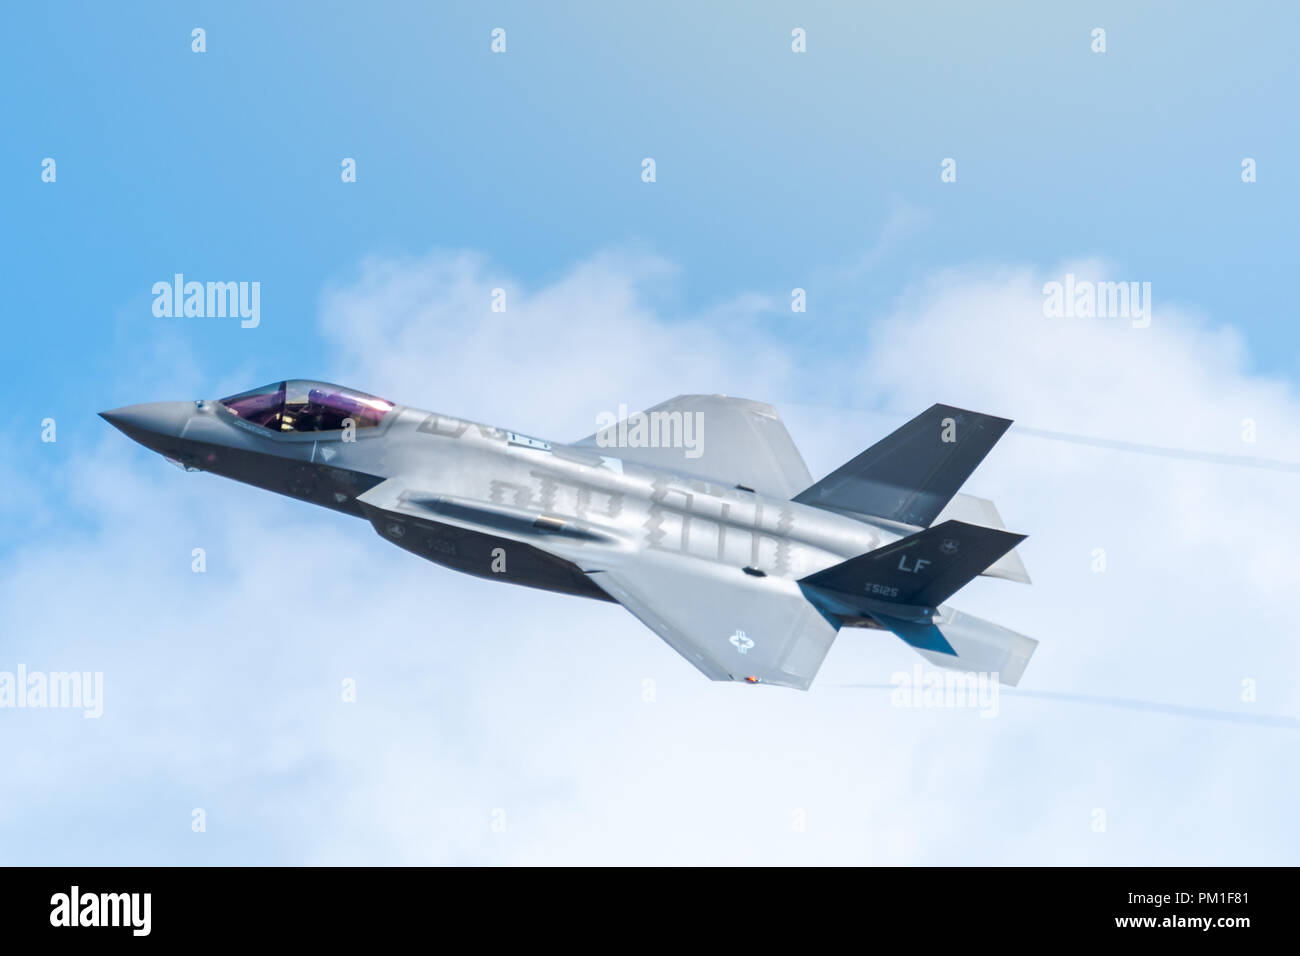 FAIRFORD, UK, JULY 13 2018: A photograph documenting a Lockheed Martin F-35 Lightning II stealth multirole fighter aircraft from the USAF displaying a Stock Photo